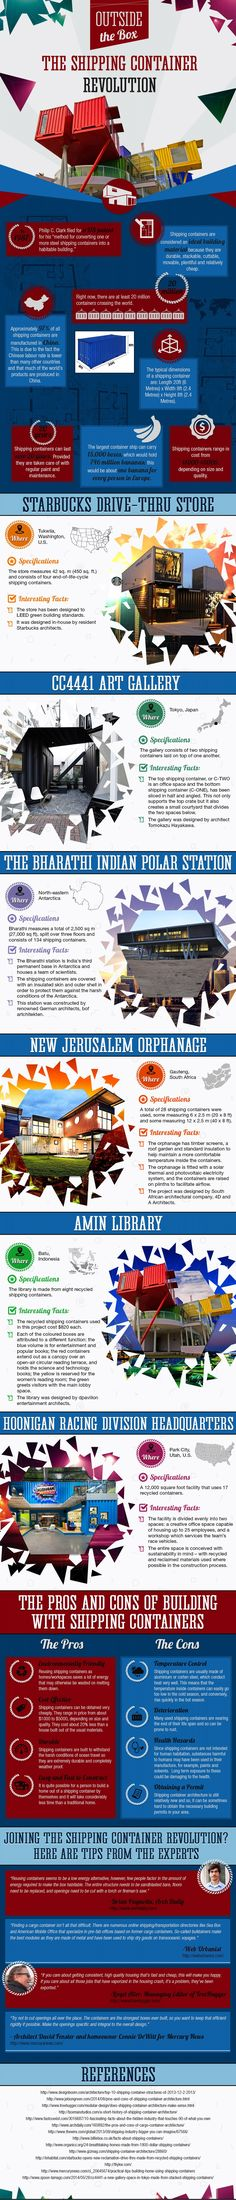 Shipping container home plans - Find out how to build container homes here http://howtobuildashippingcontainerhome.blogspot.co.nz/